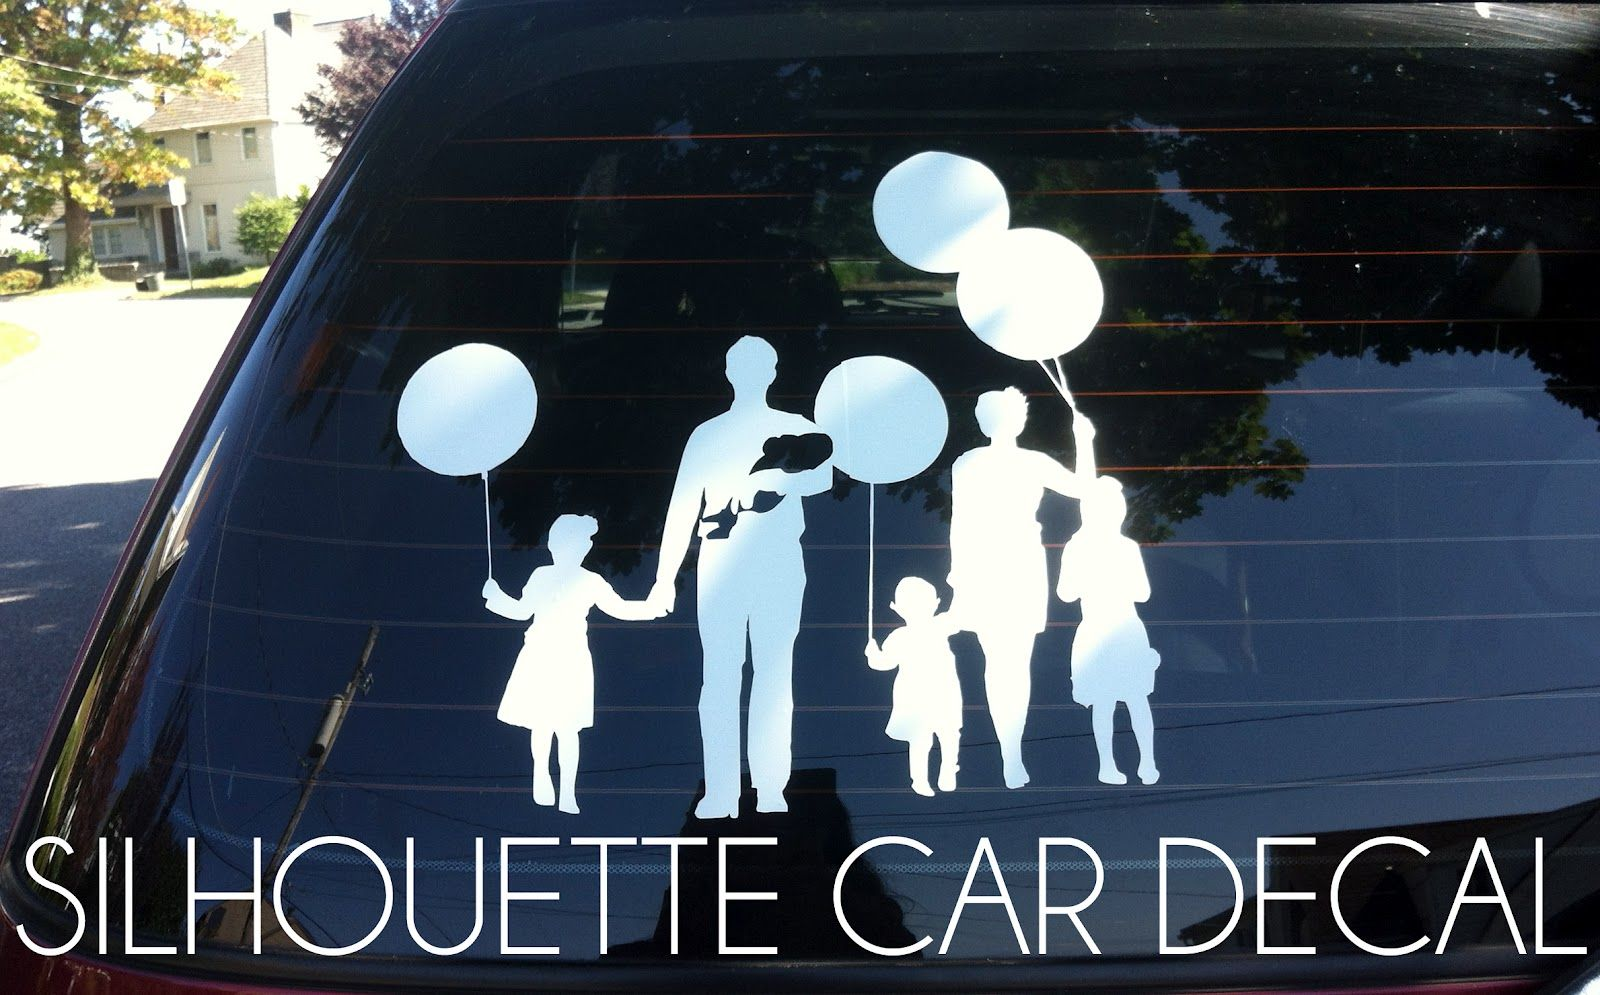 Tutorial On How To Make A RealLife Silhouette Car Decal By - Family car sticker decalsbest silhouette for the car images on pinterest family car